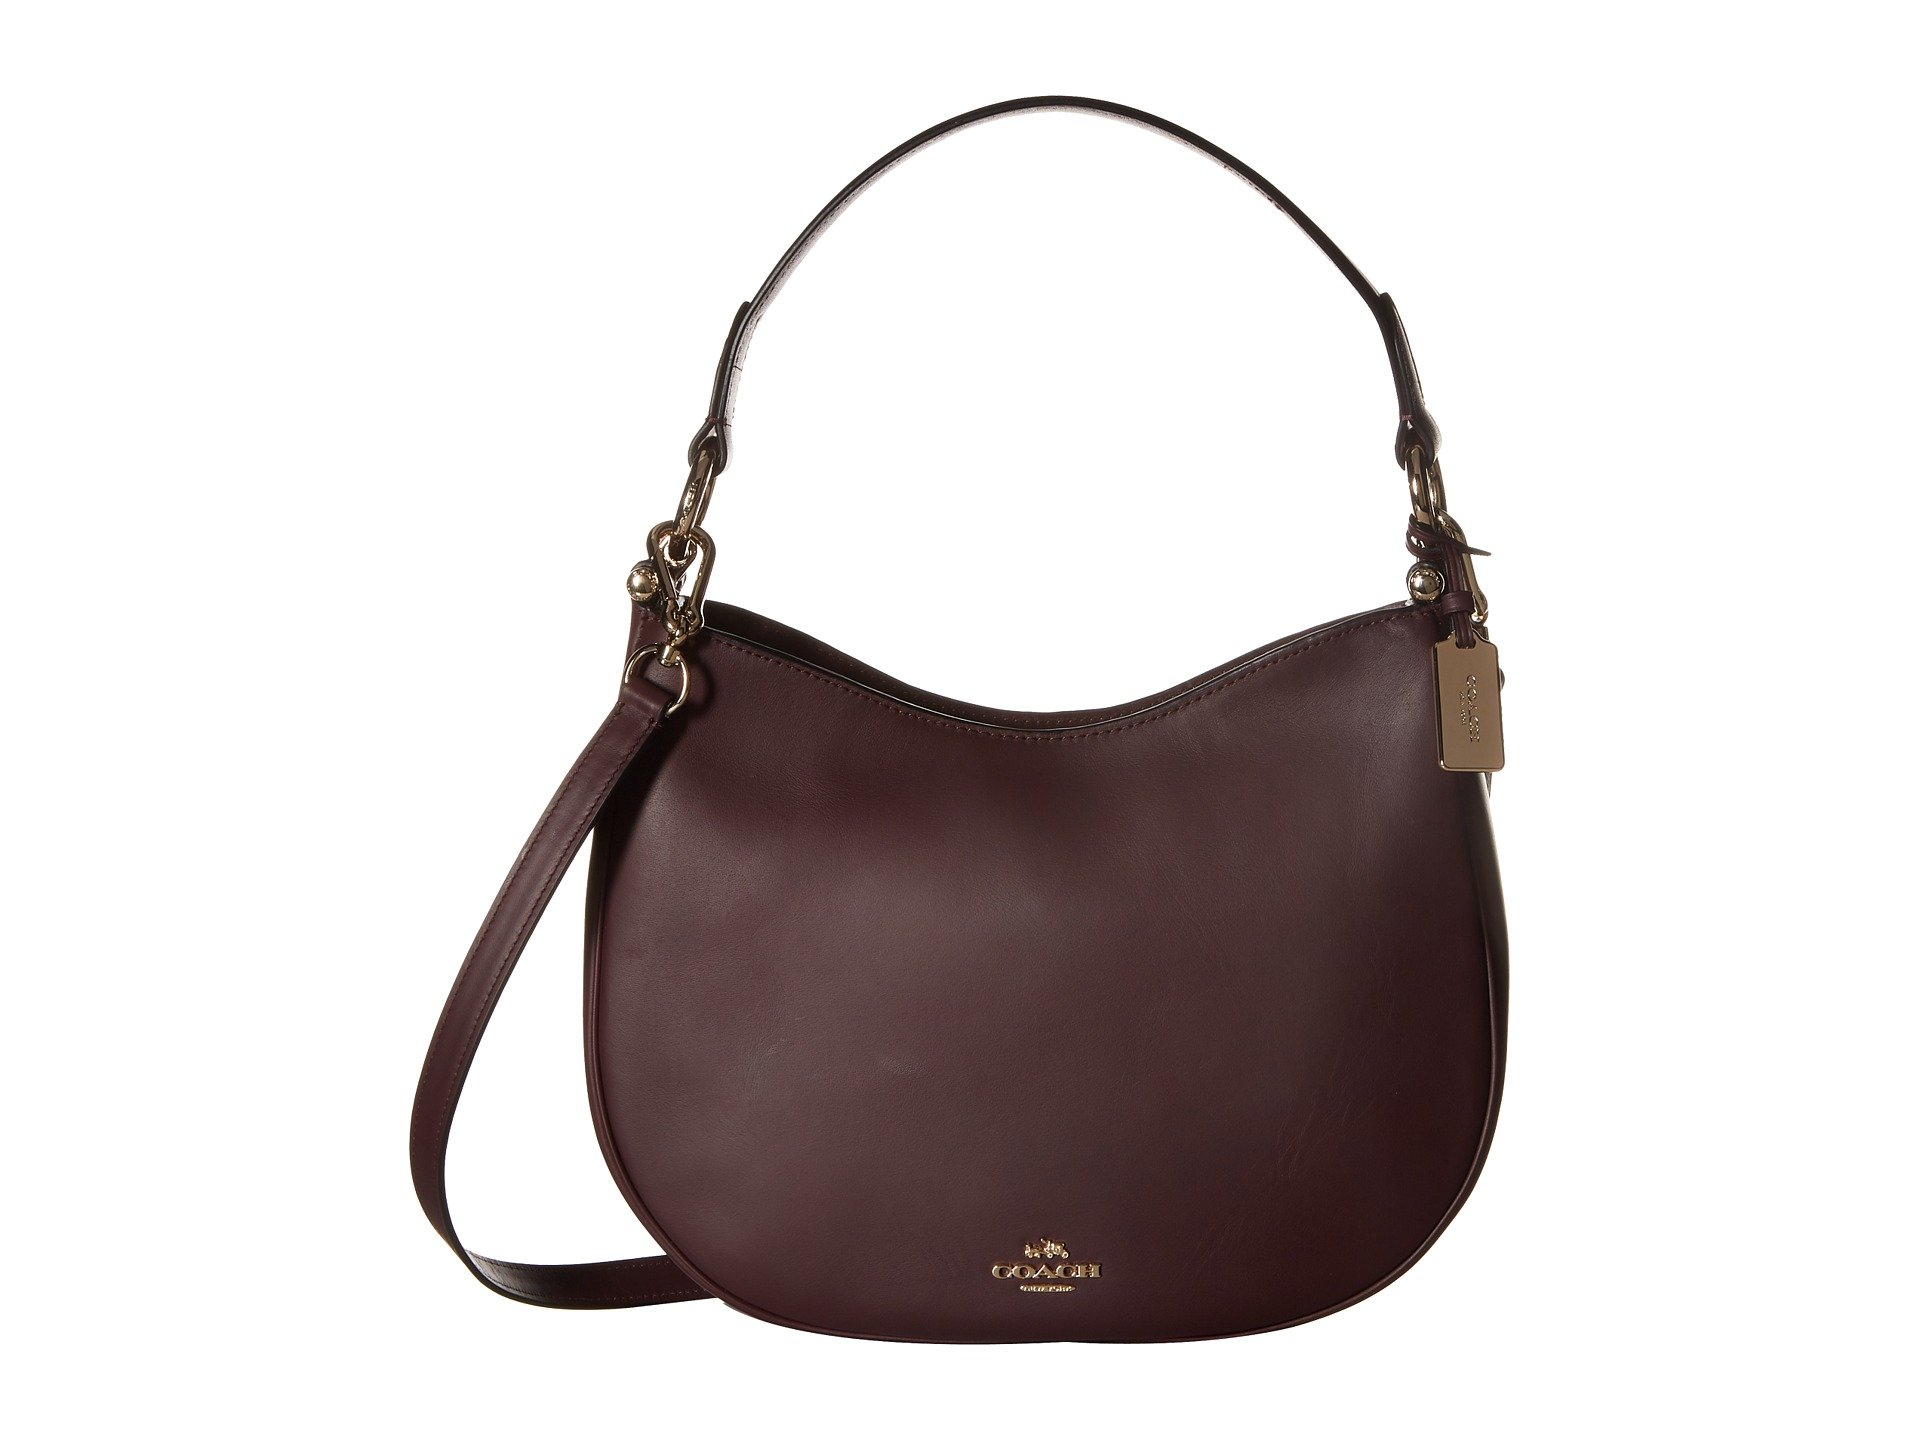 COACH Women's Glovetanned Coach Nomad Crossbody LI/Oxblood Hobo